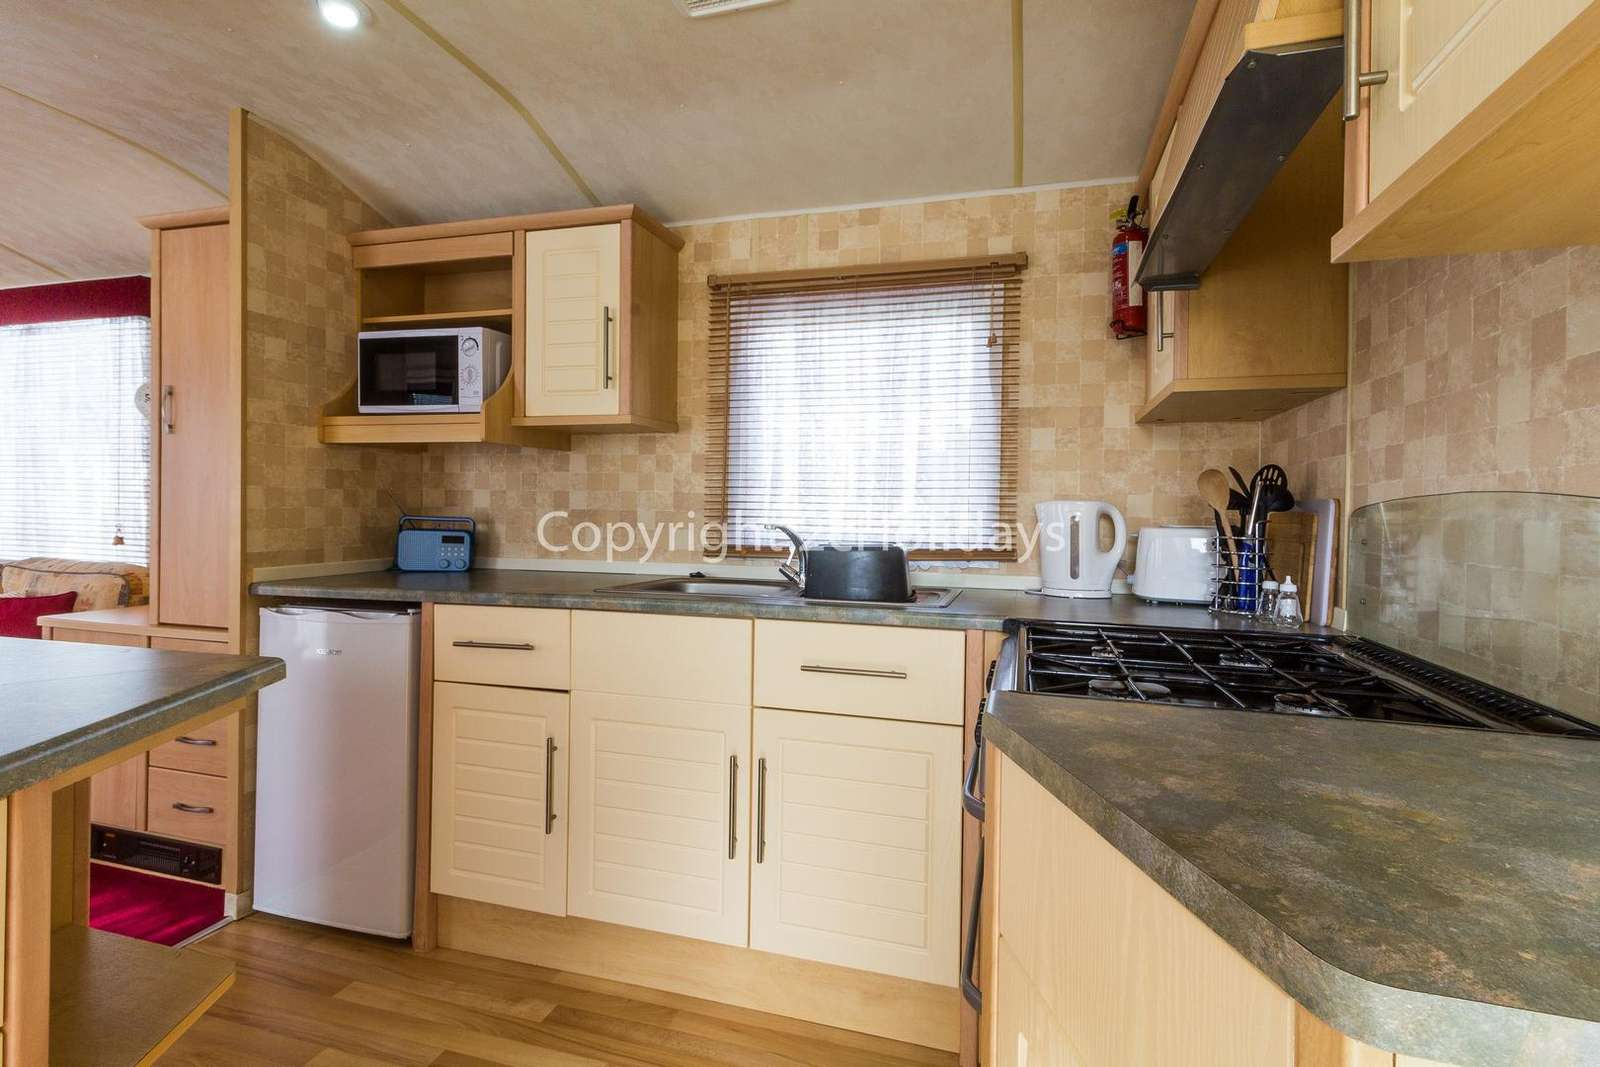 Come and stay in this private accommodation Broadland Sands Holiday Park.